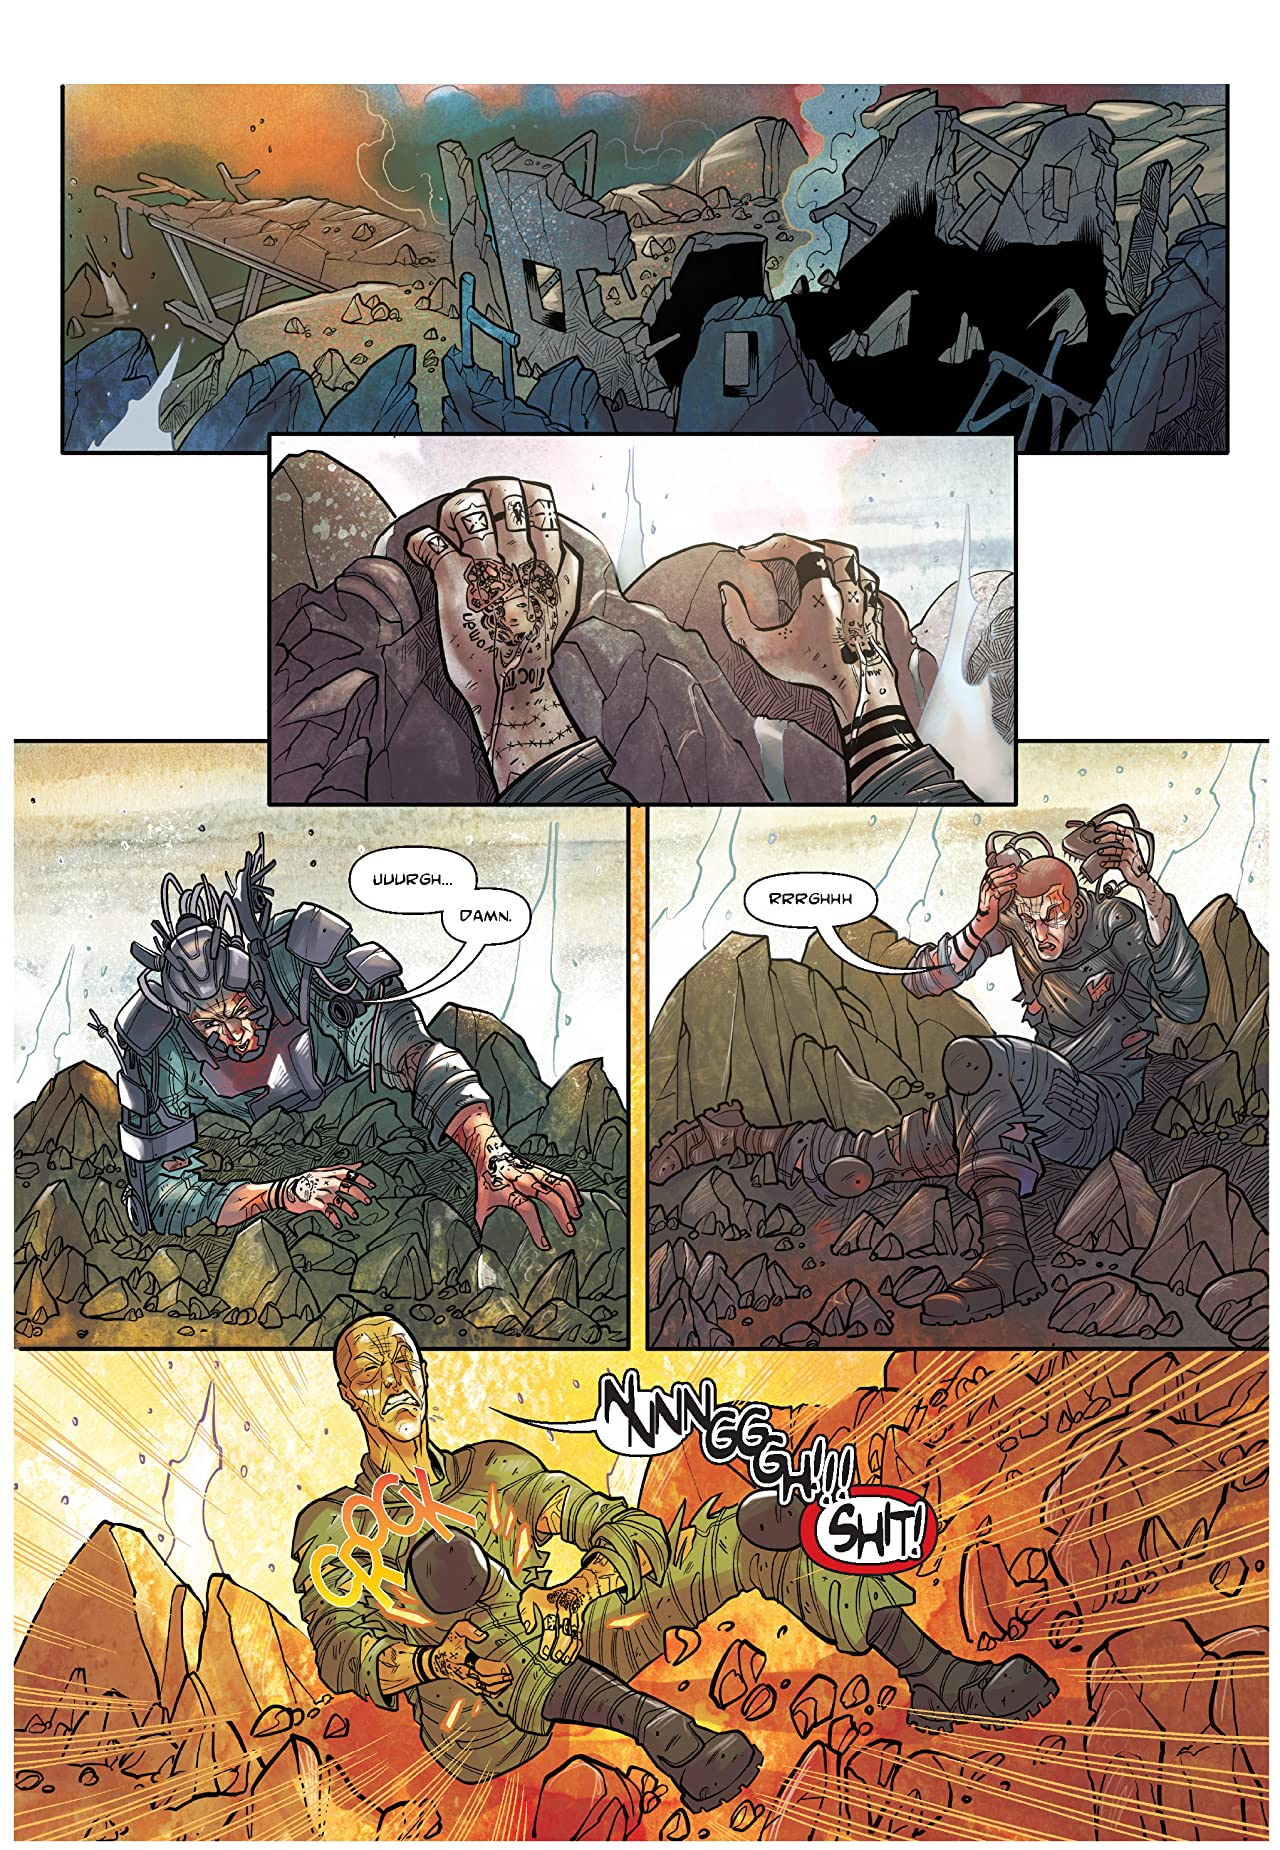 The Shadow of a Terrible Thing #5